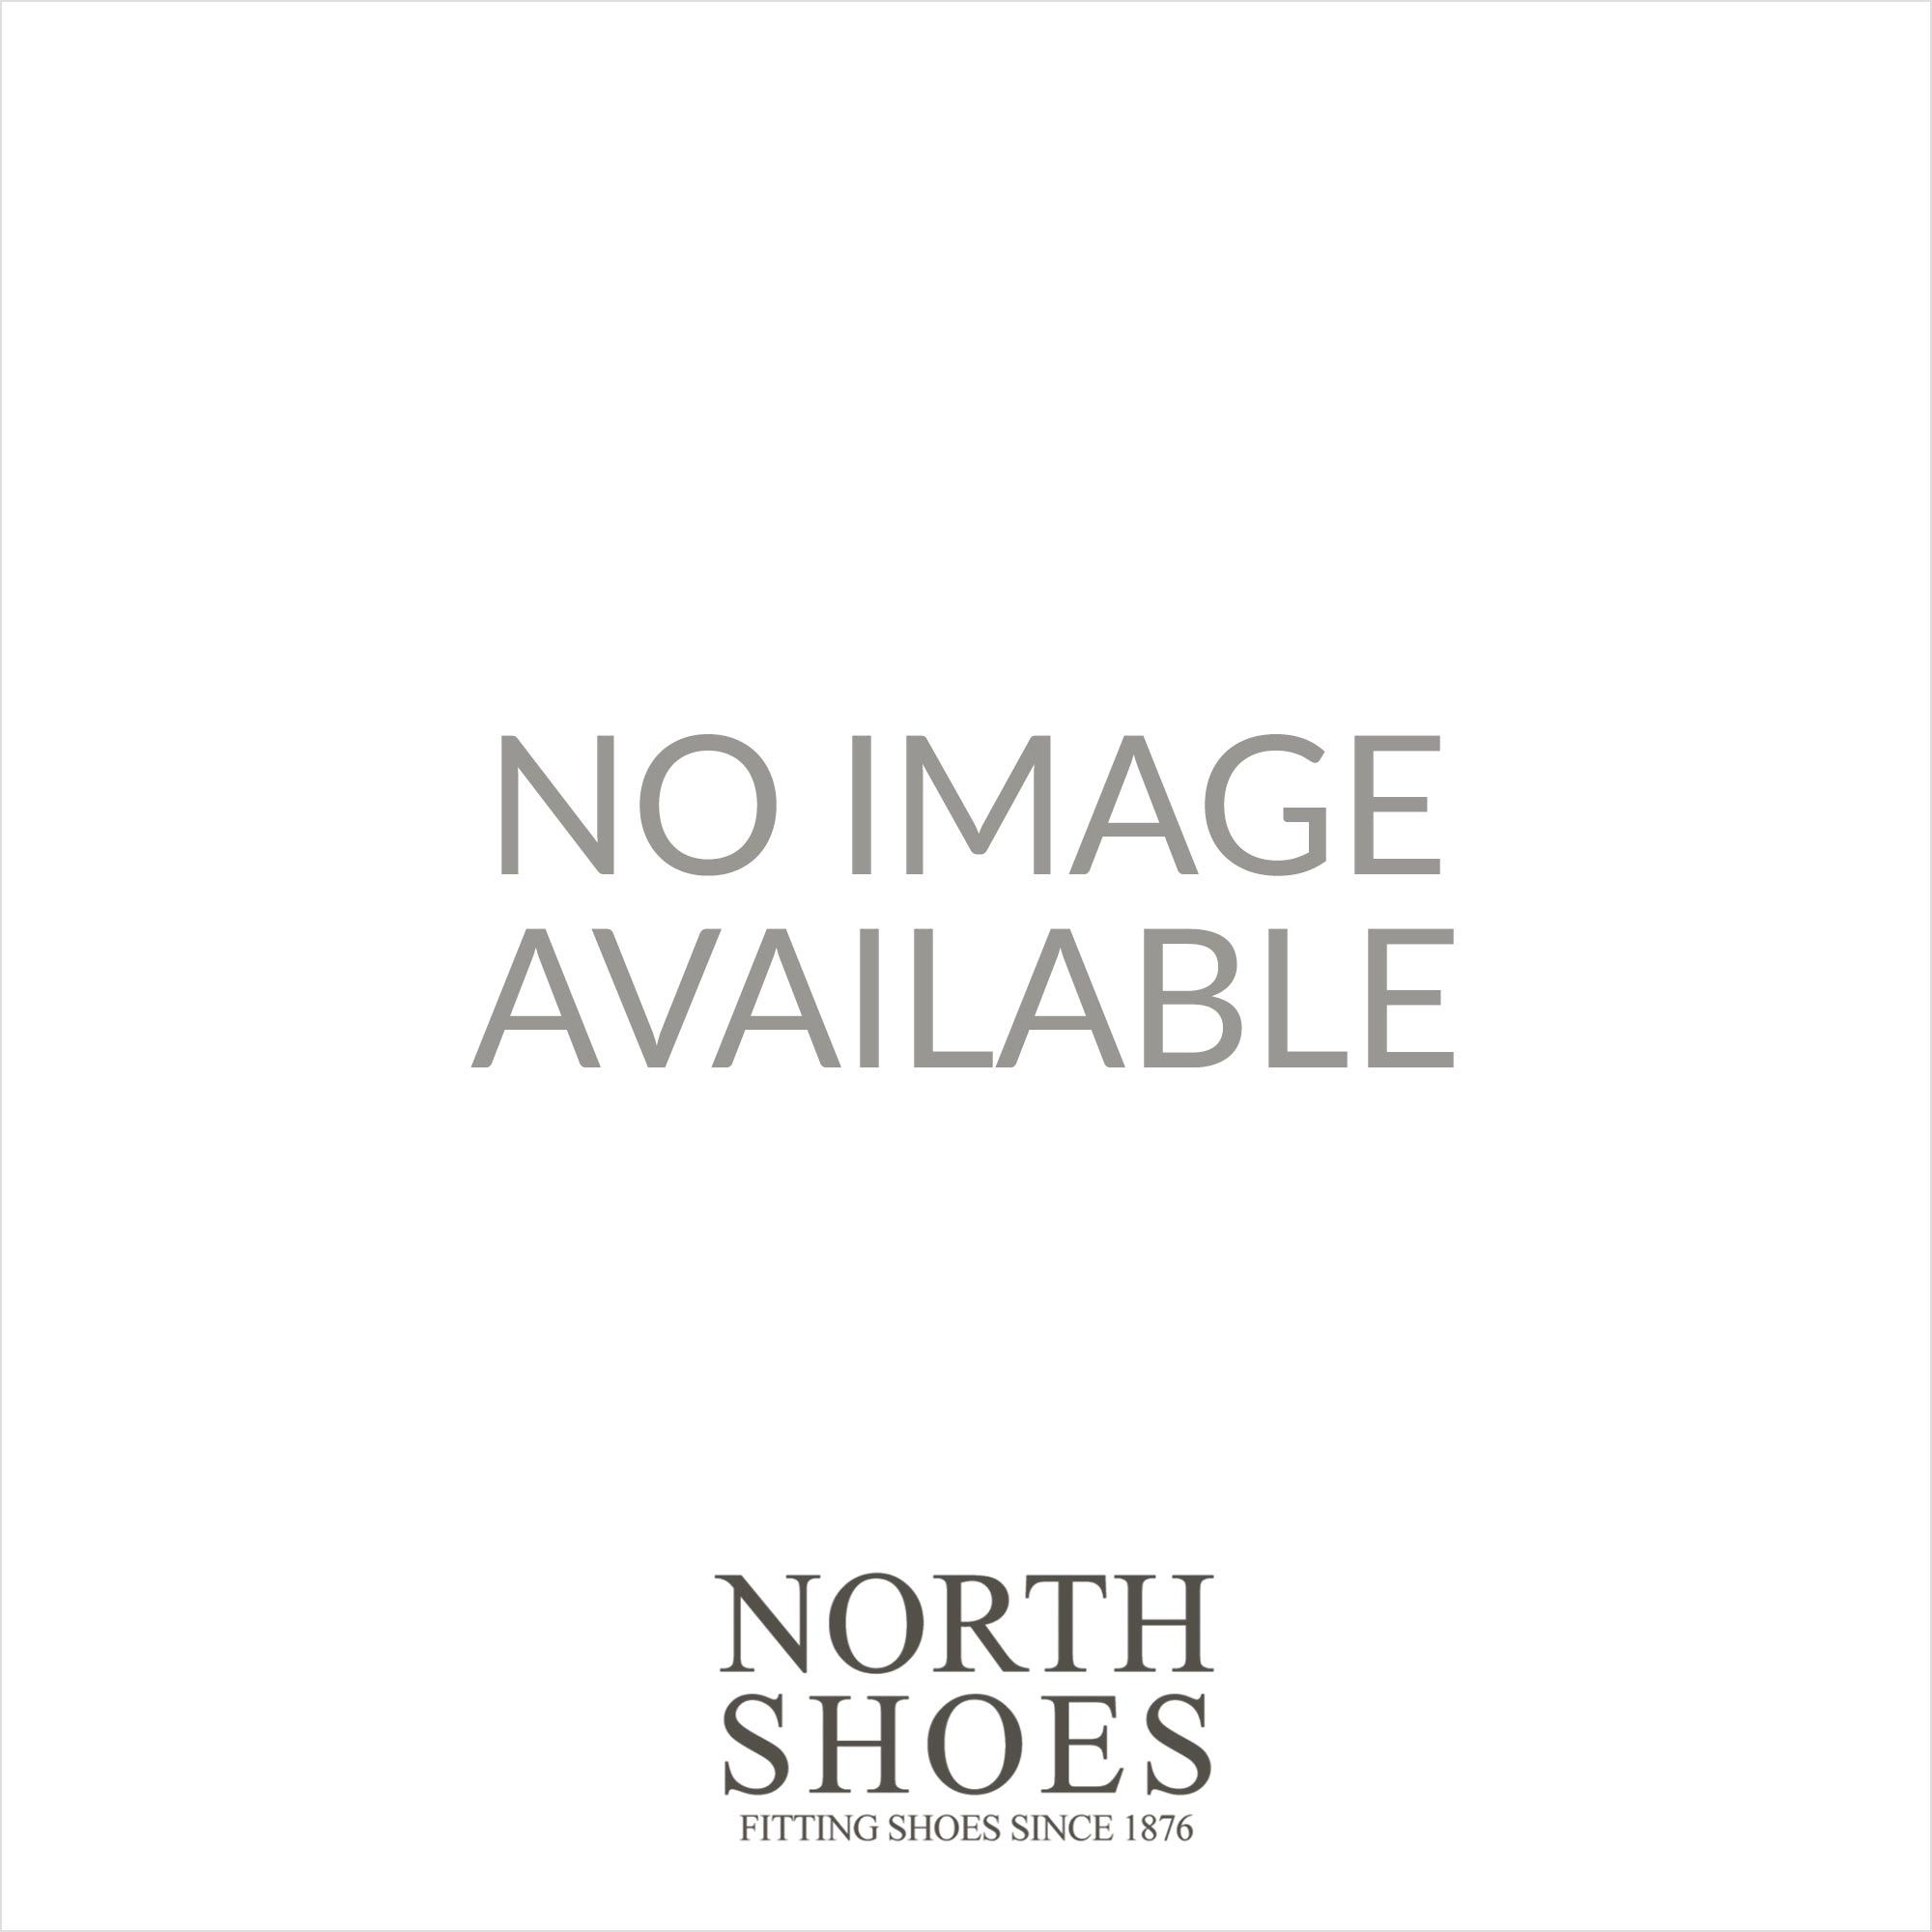 74d842f0b204f Mens Clarks Couture Bloom Nude Pink Womens Shoe   SALE   Buy Online UK